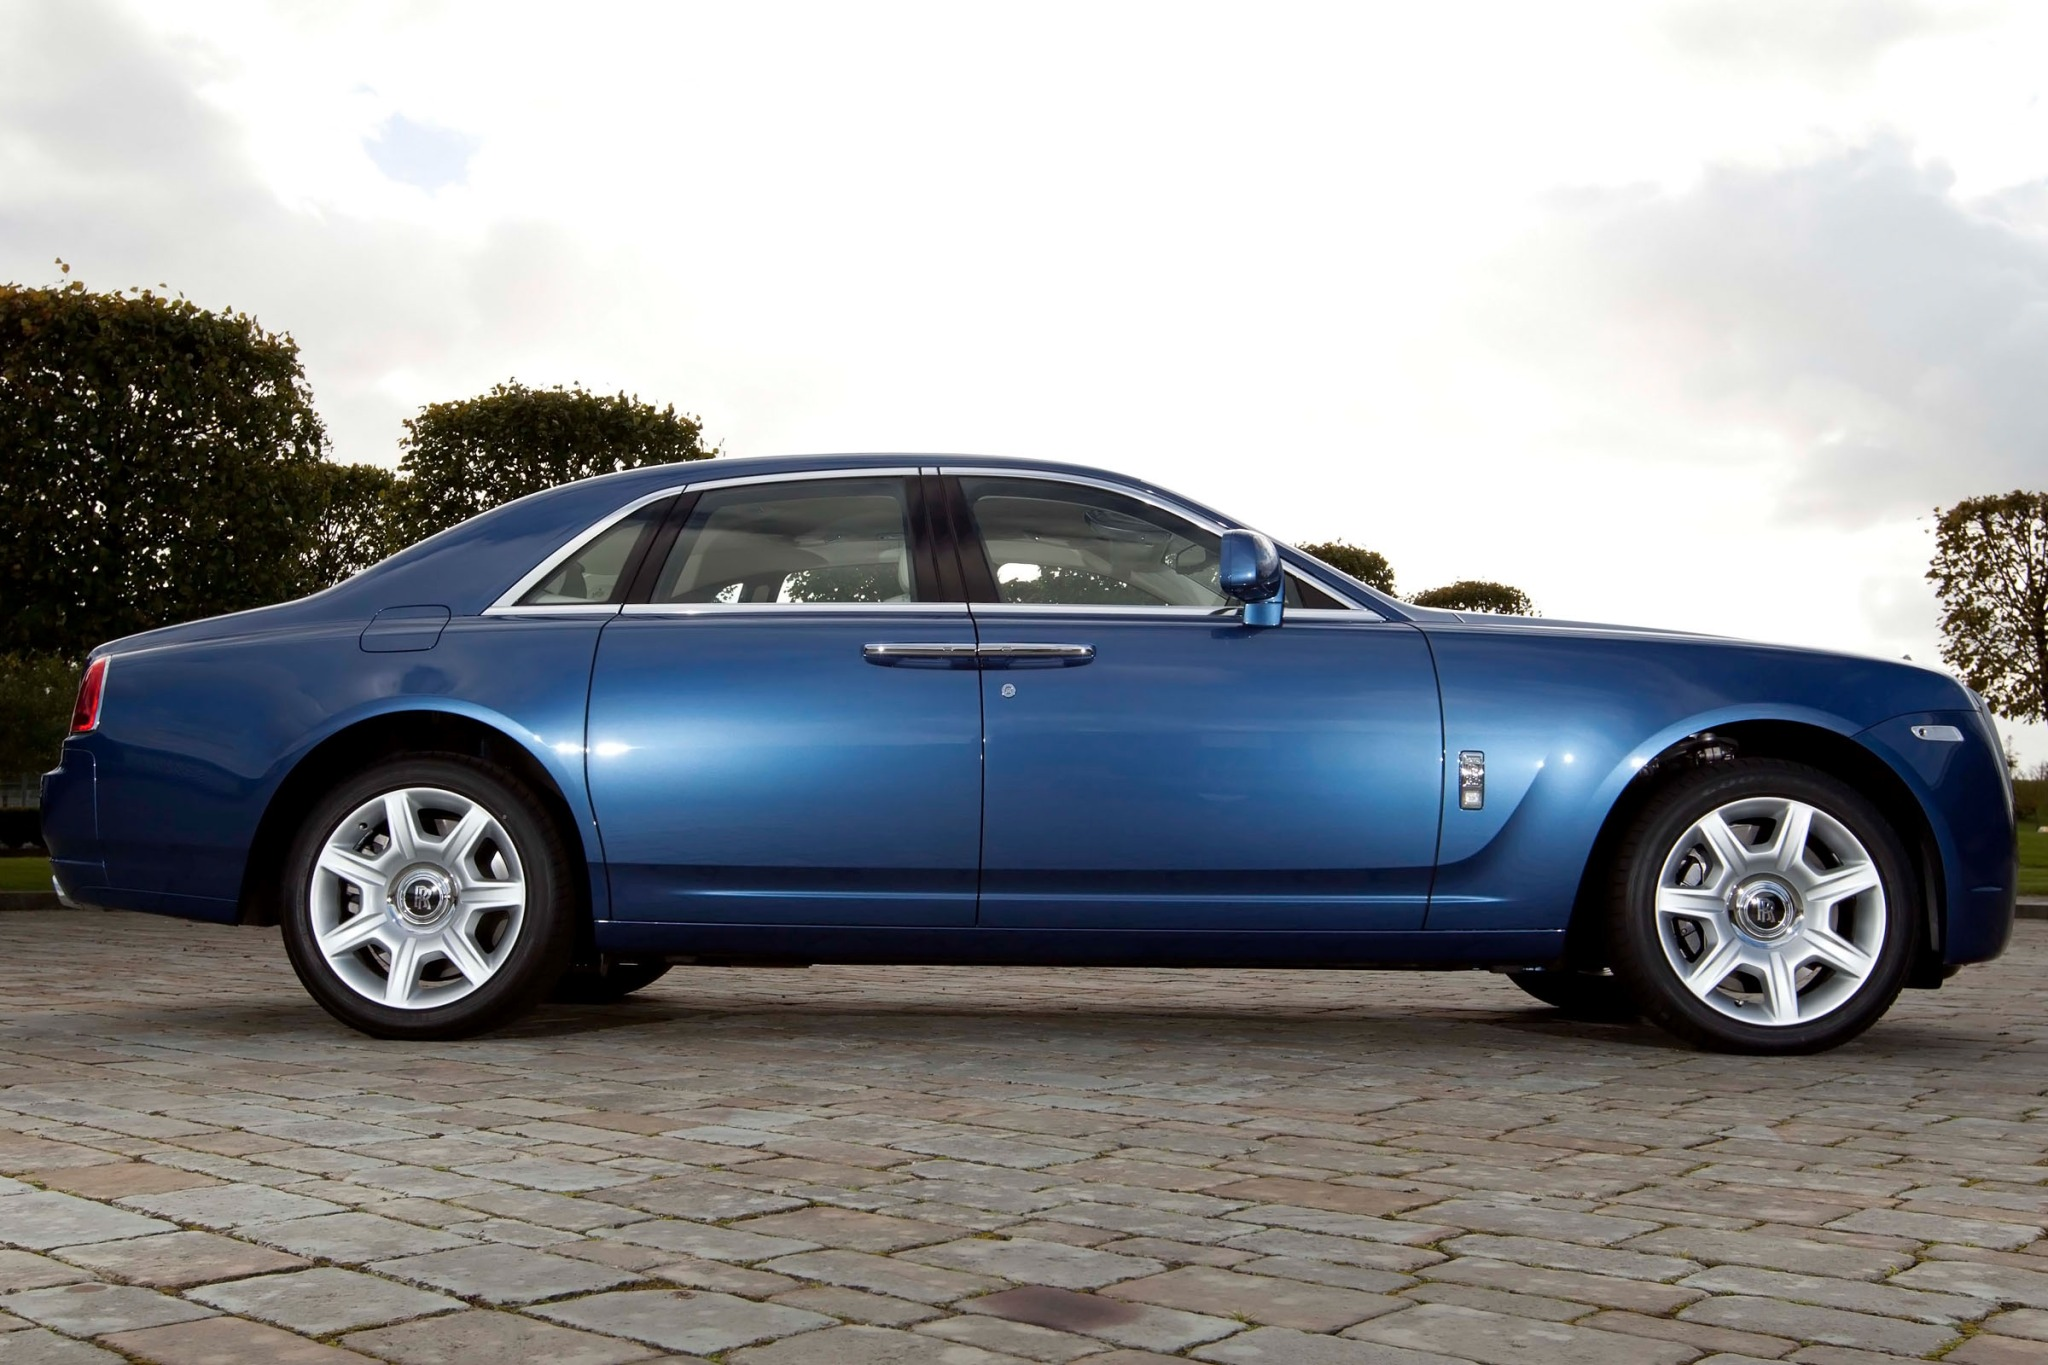 2012 Rolls-Royce Ghost EW interior #7